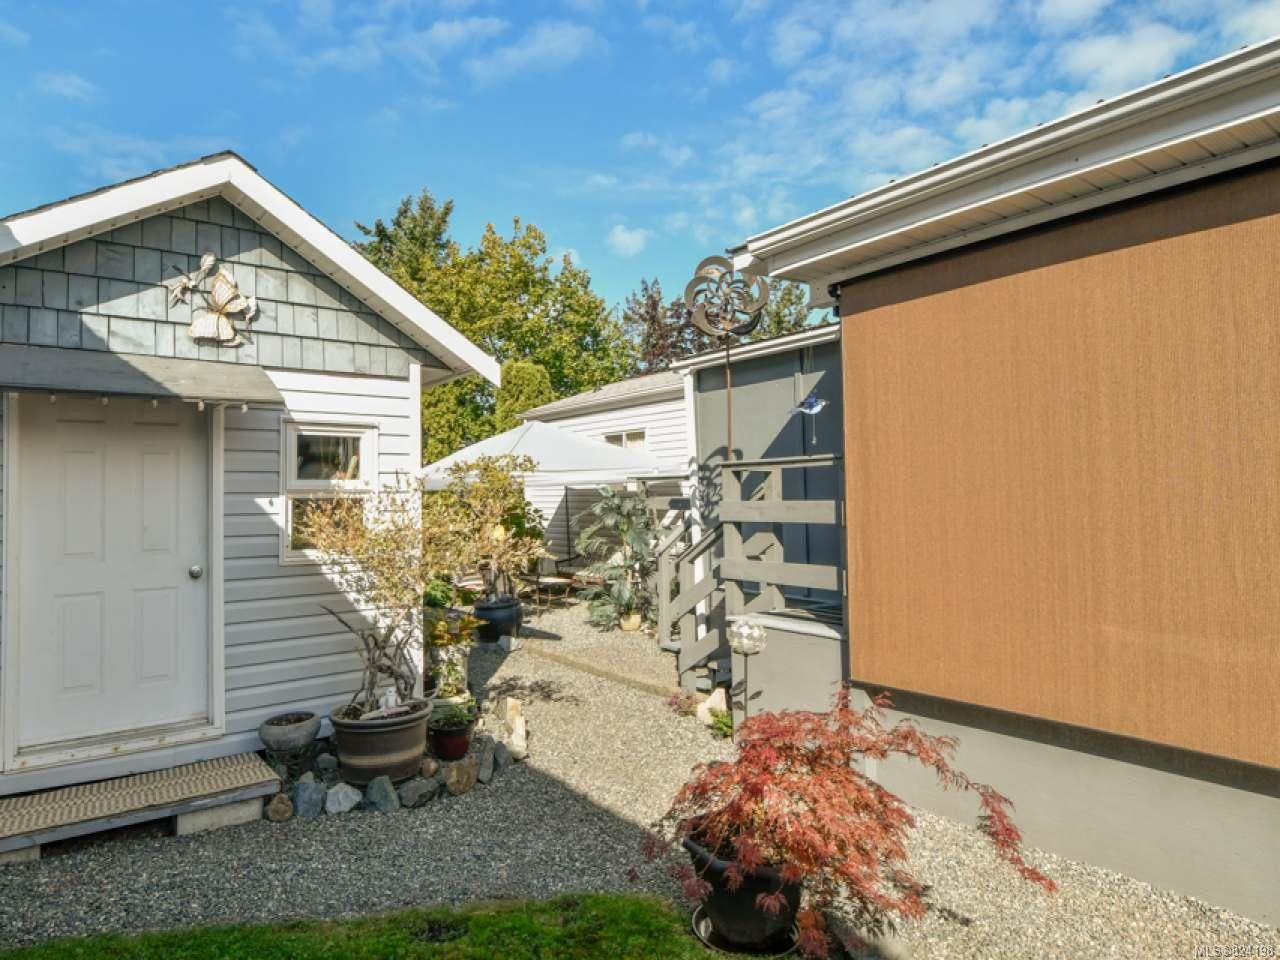 Photo 13: Photos: 38 951 Homewood Rd in CAMPBELL RIVER: CR Campbell River Central Manufactured Home for sale (Campbell River)  : MLS®# 824198